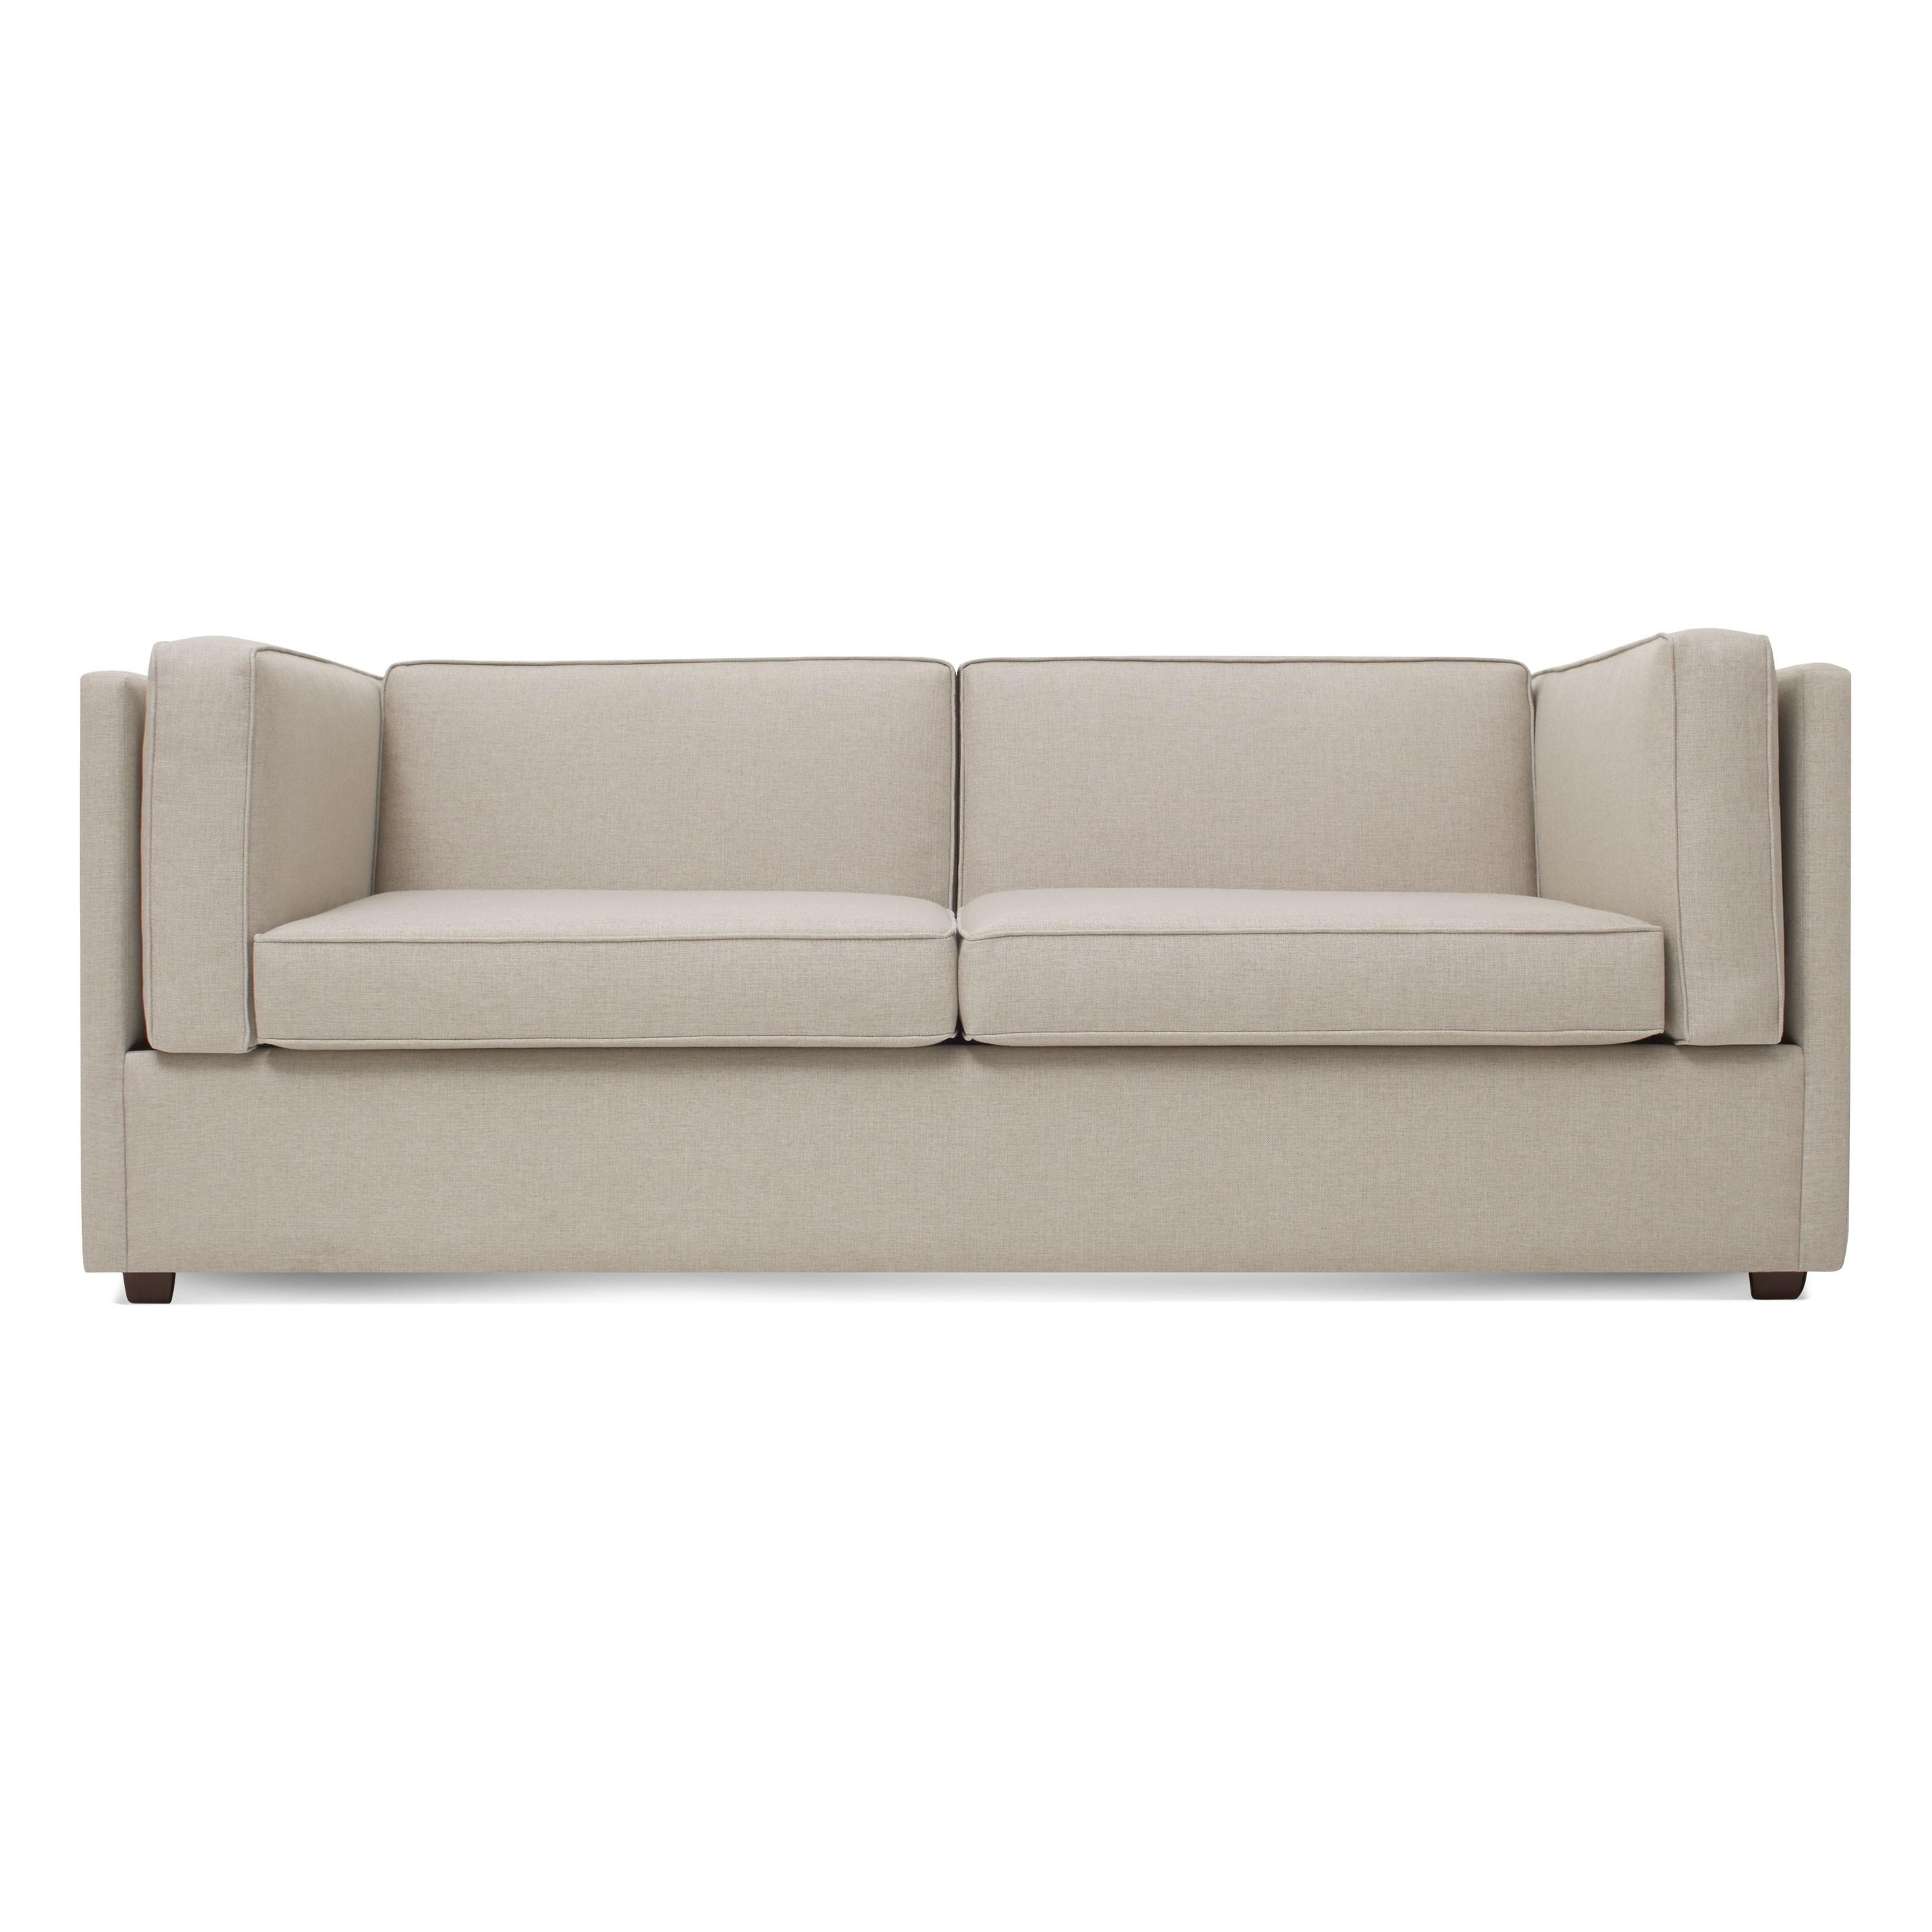 Sleeper Sofa – Diplomat Convertible Sofa | Blu Dot In Blu Dot Sleeper Sofas (View 7 of 20)